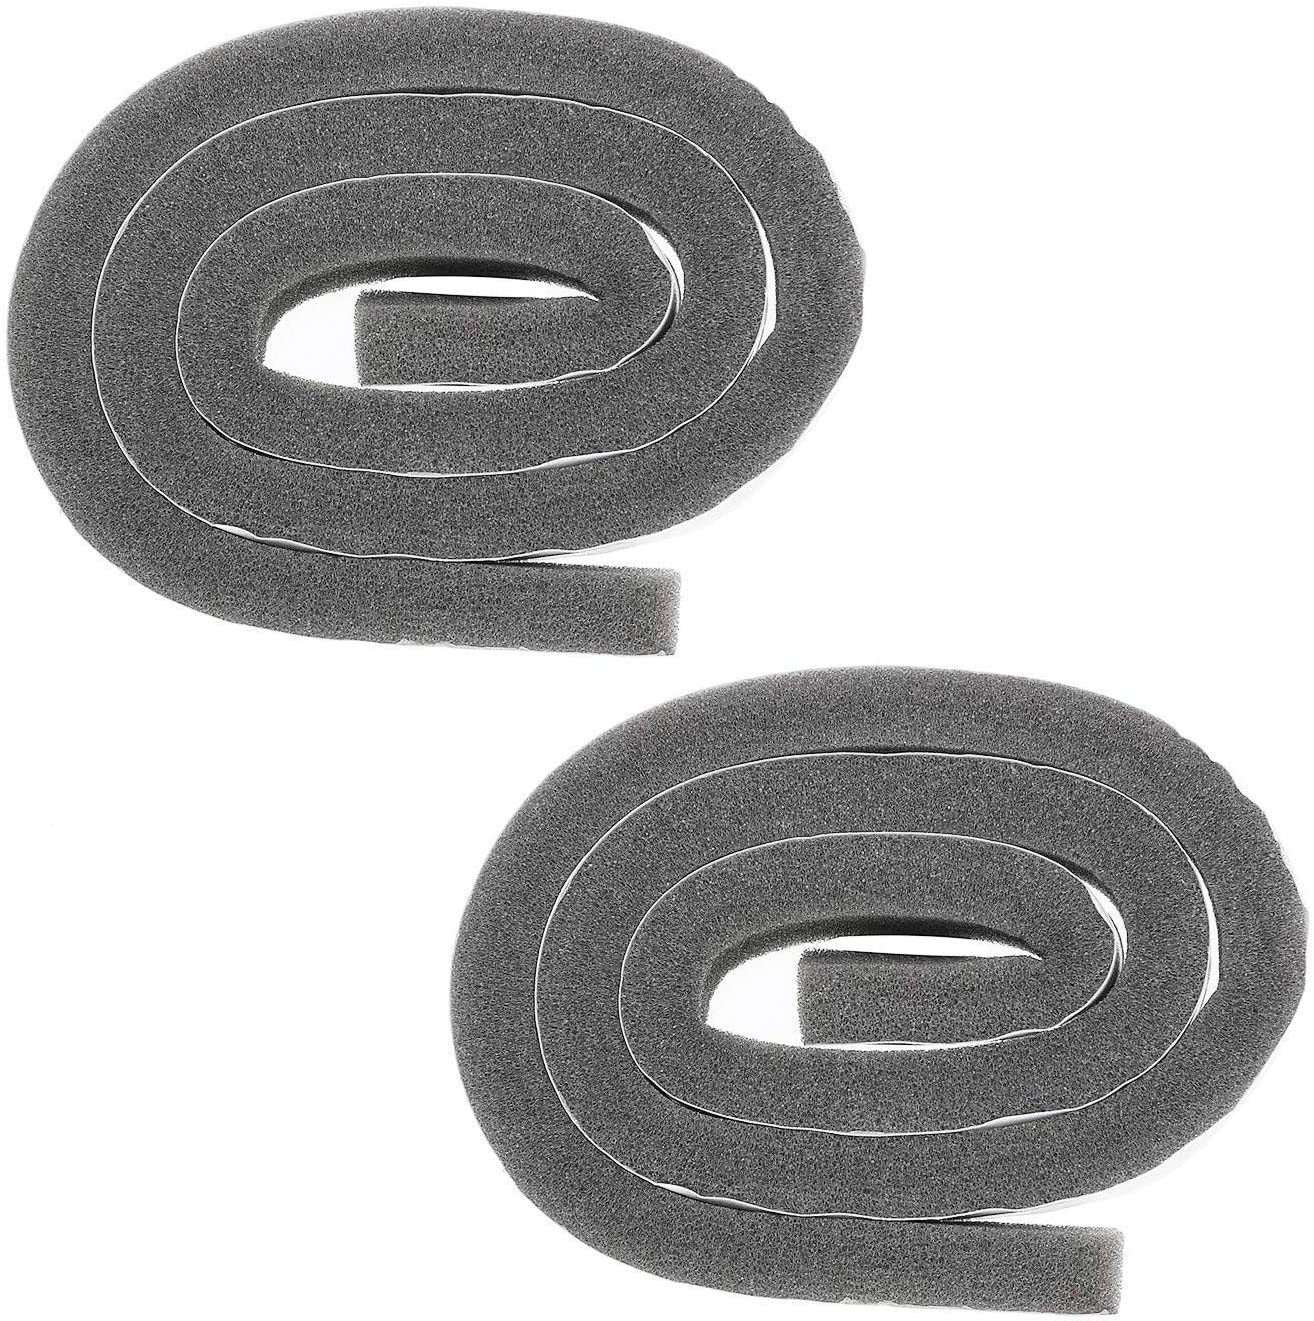 339956 Dryer Lint Screen Foam Housing Seal for Whirlpool Kenmore Replace EA345944 PS345944 WP339956 Pack of 2